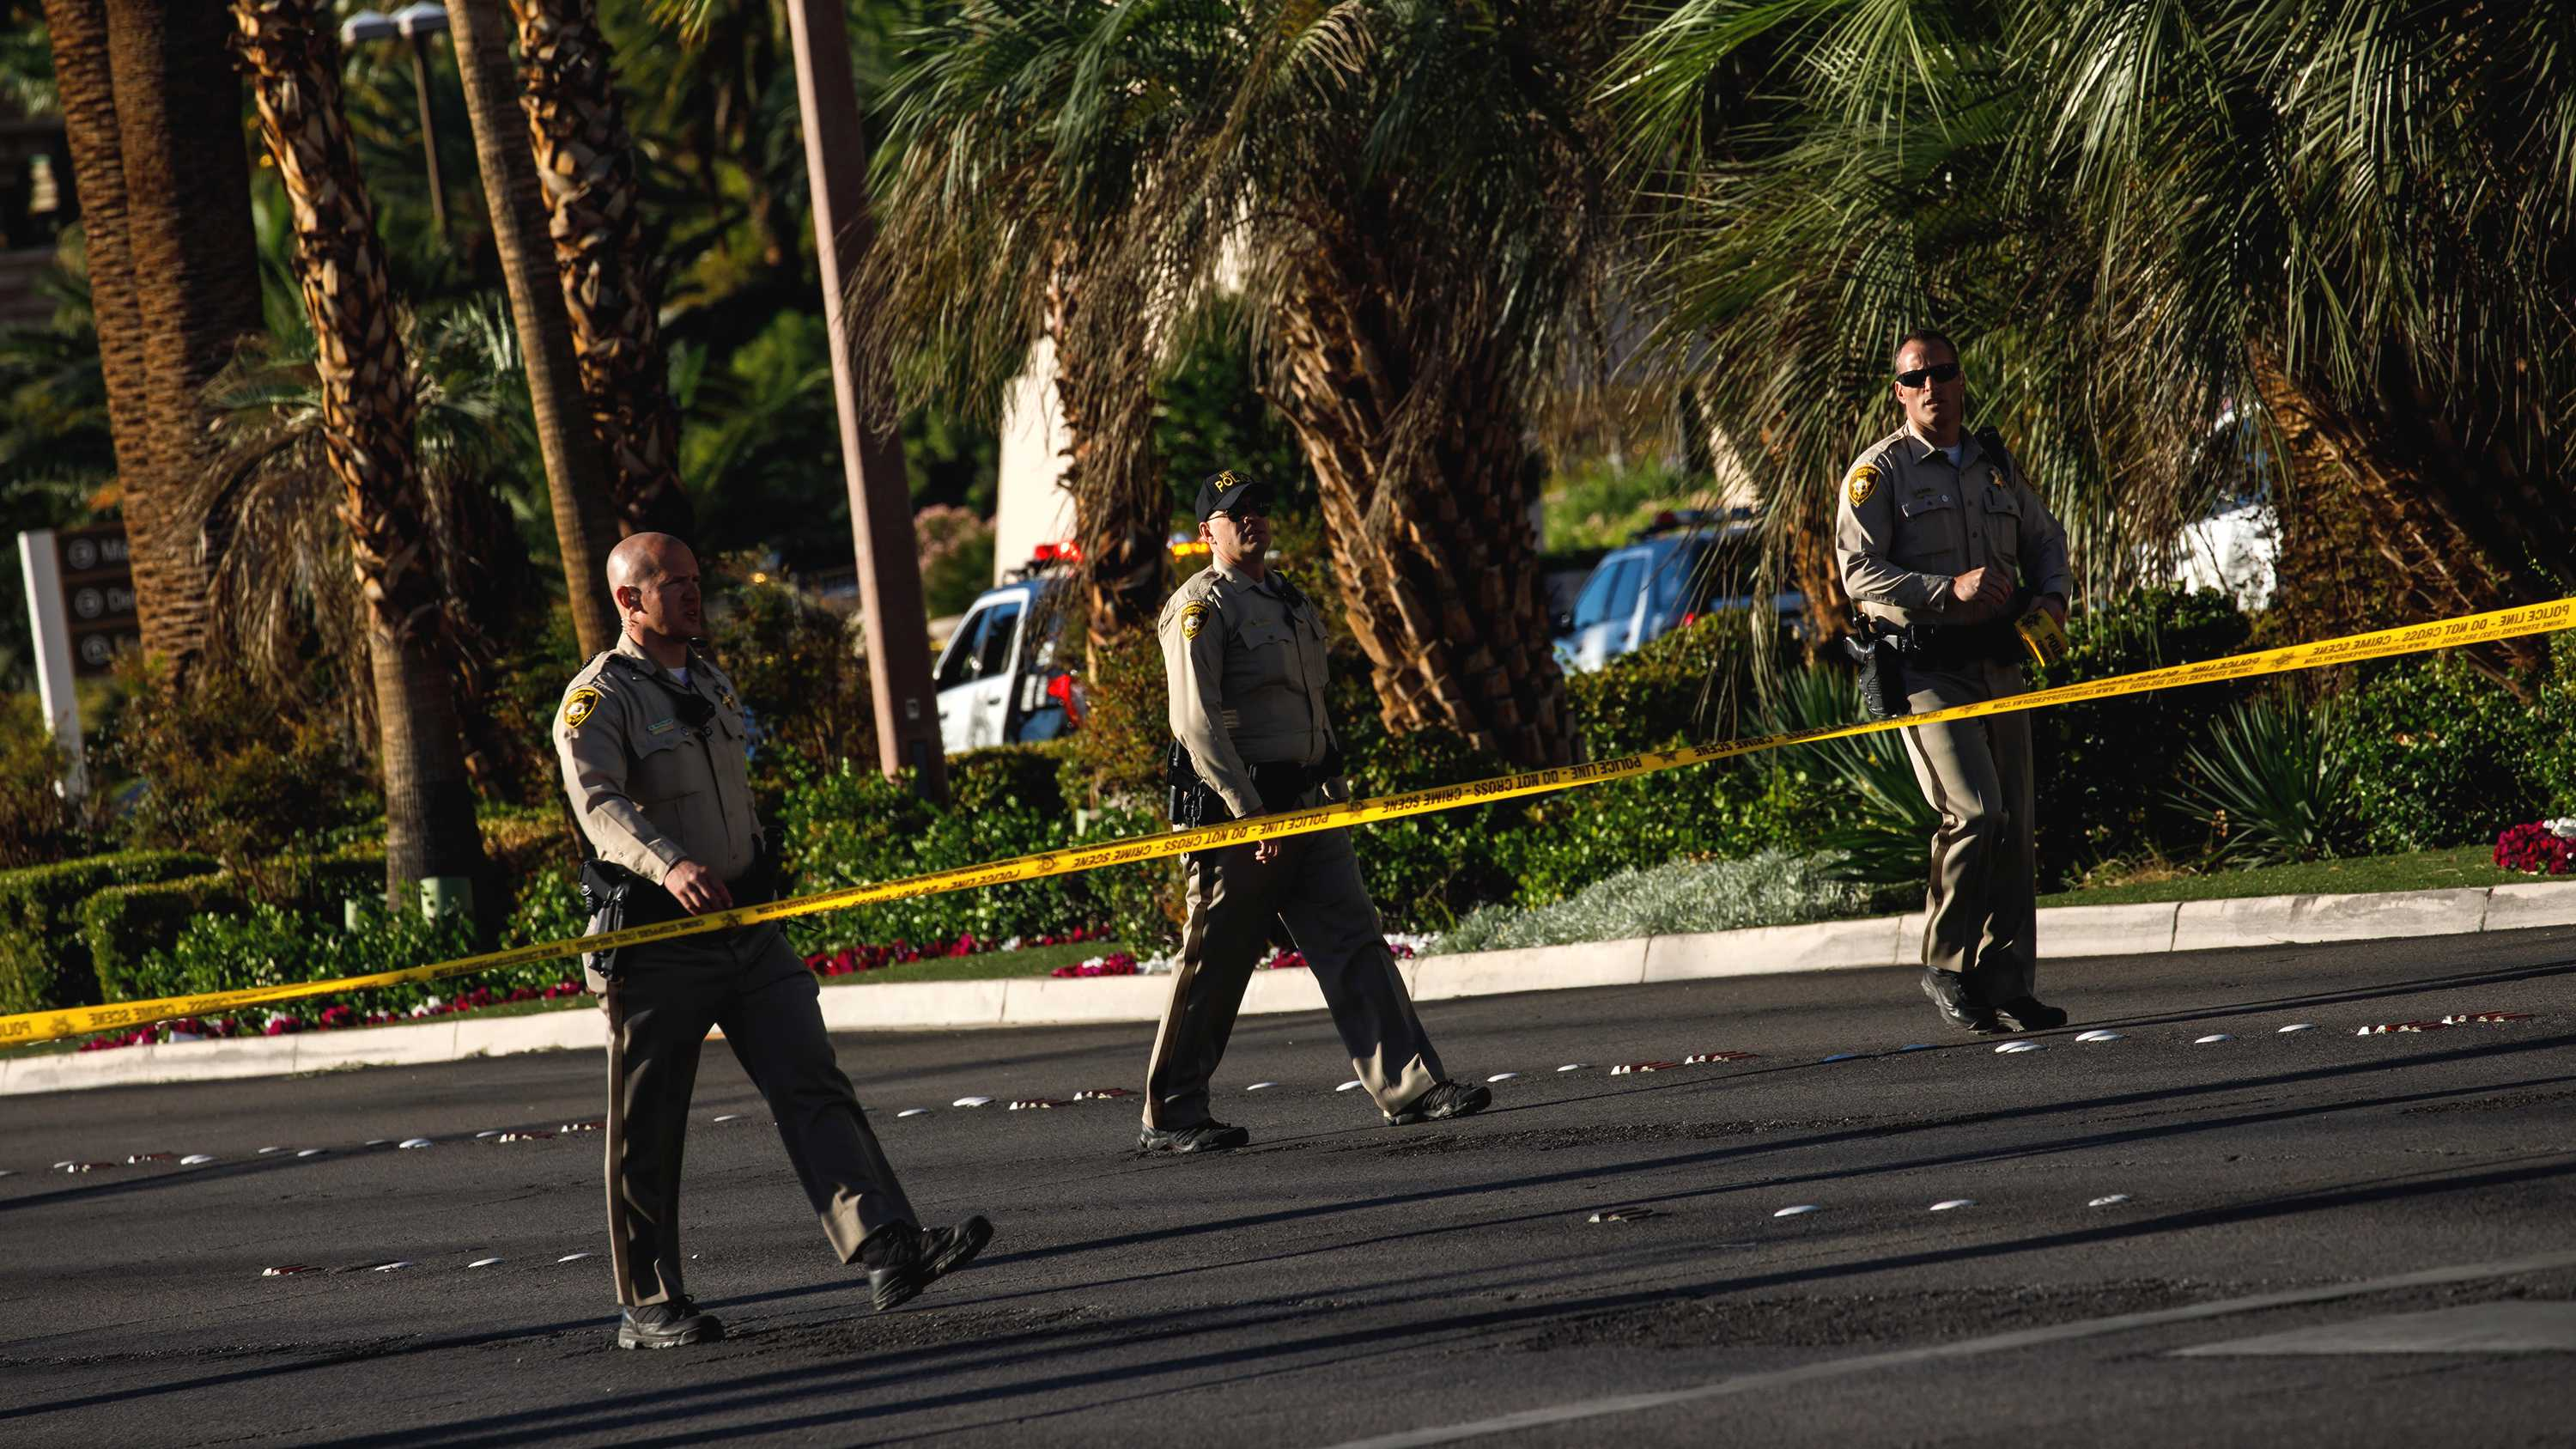 Law enforcement officers cordon off a crime scene after a gunman opened fire from an upper story of Mandalay Bay resort on a country music festival across the street on the Las Vegas Strip on Sunday night, leaving at least 58 dead and more than 500 injured, in Las Vegas, Nevada, on Oct. 2, 2017. (Marcus Yam/Los Angeles Times/TNS)